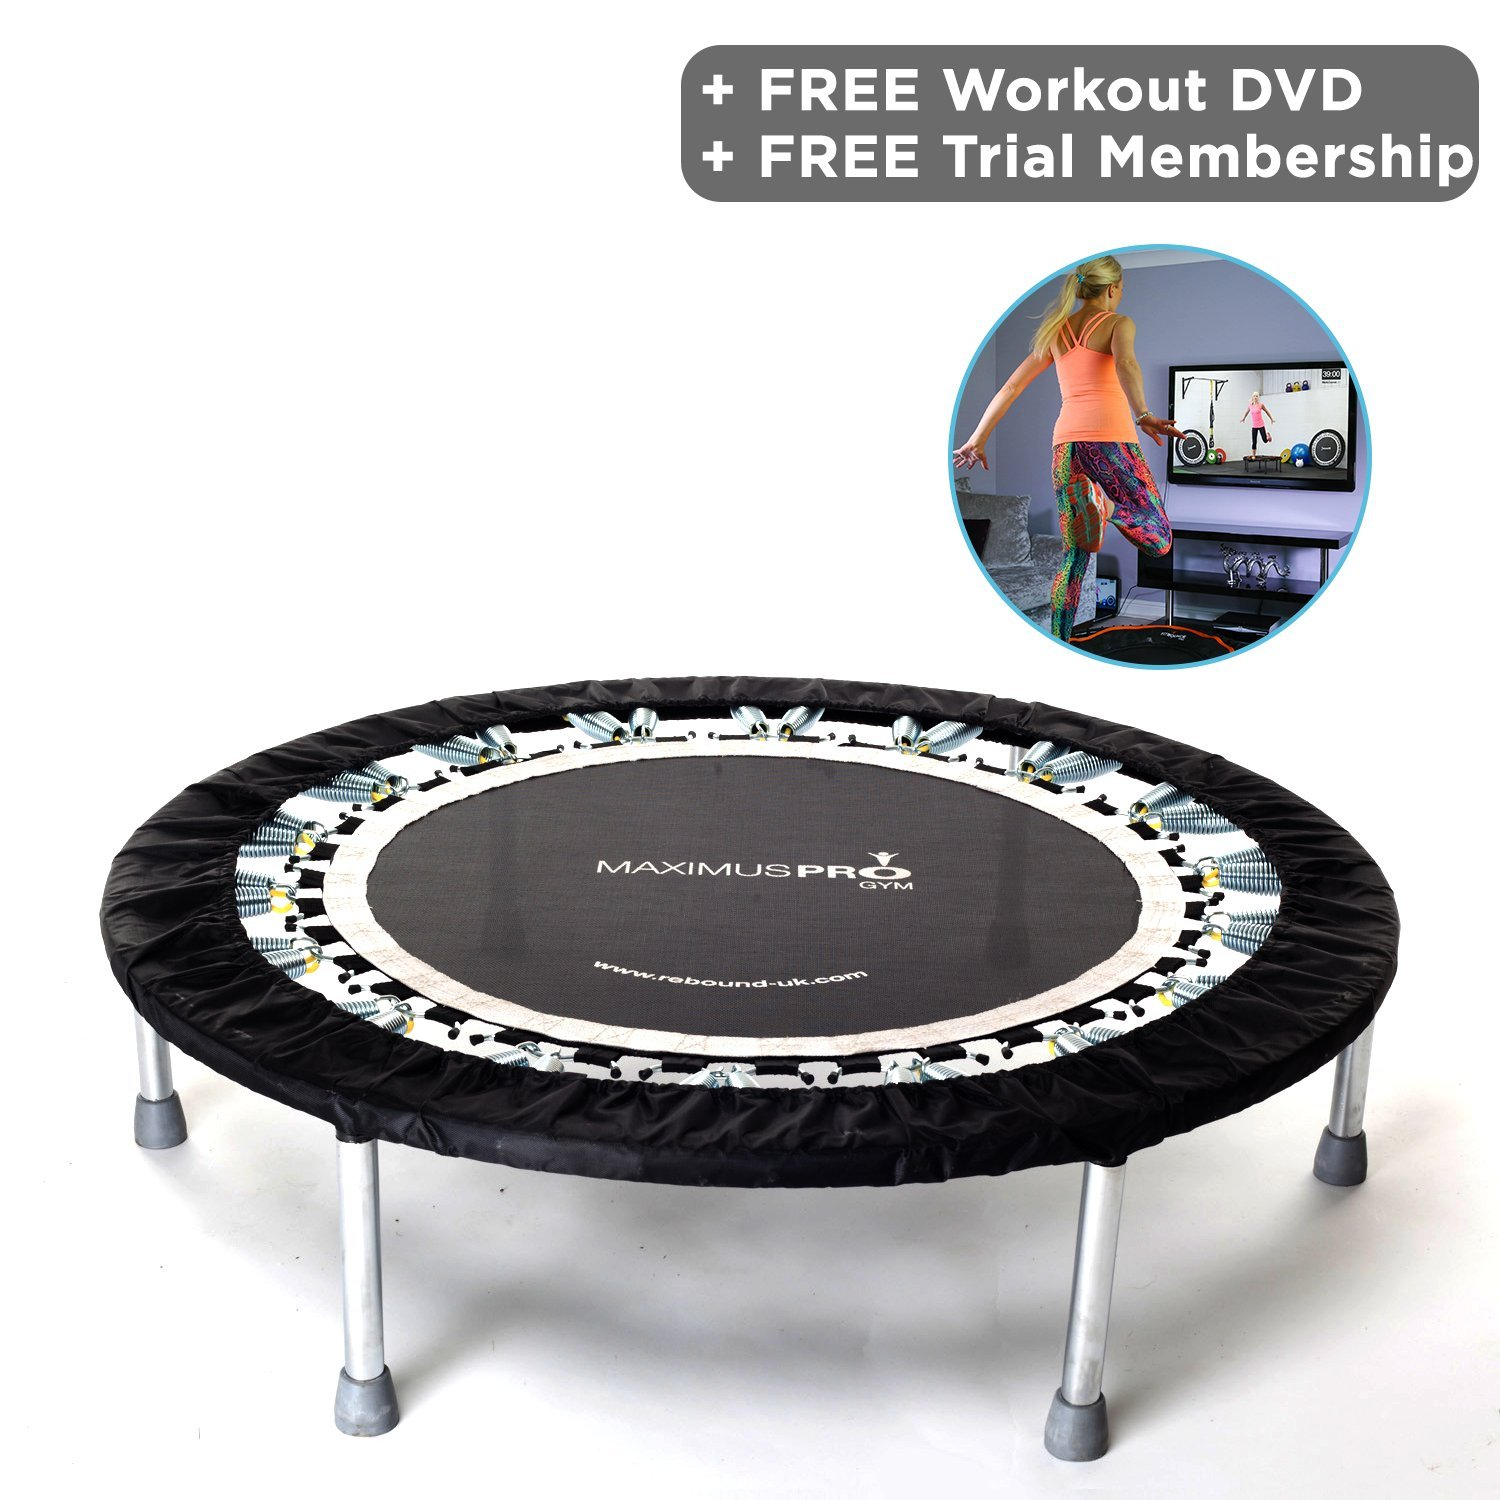 5b566b814bfe1 Rebound UK High quality Professional Gym & Studio Rebounder - Mini  Trampoline - 150kgs User Weight - Folding legs + Rebounding DVD included:  Amazon.co.uk: ...